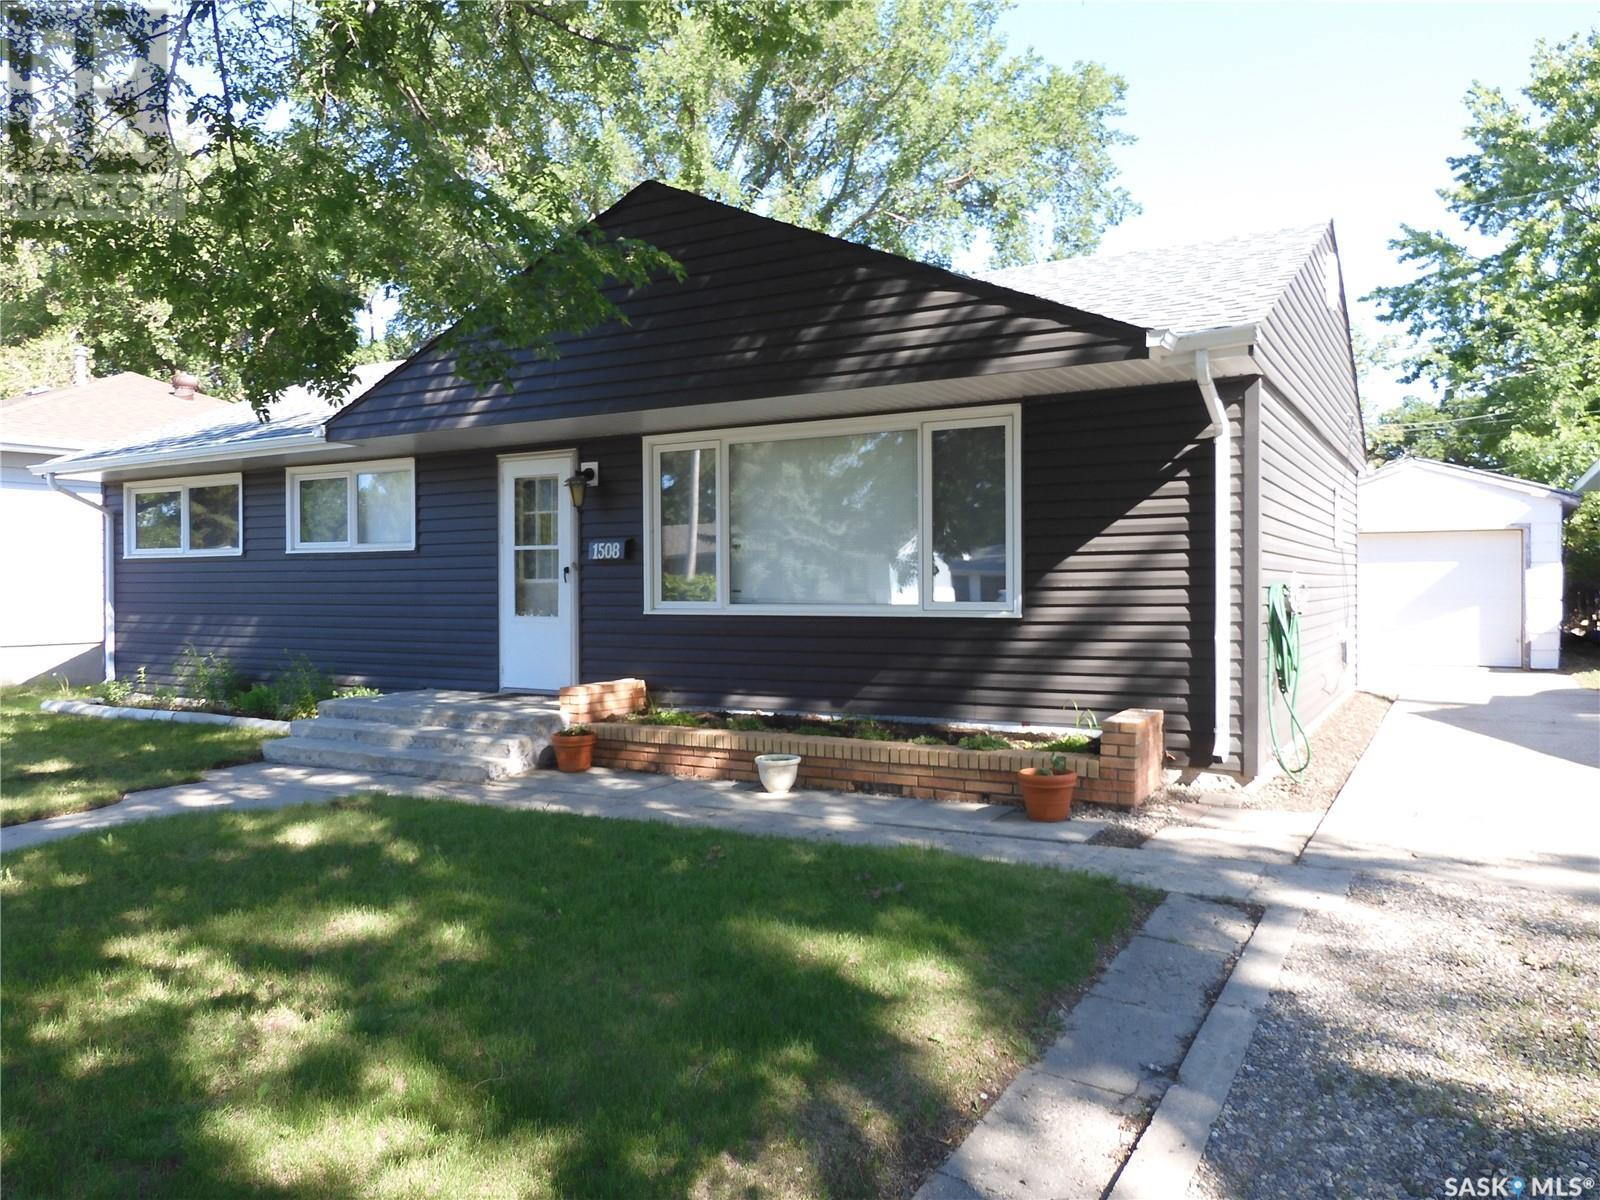 1508 Thorn CRES, Estevan, Saskatchewan, Canada S4A1V6, 3 Bedrooms Bedrooms, Register to View ,1 BathroomBathrooms,House,For Sale,SK821018